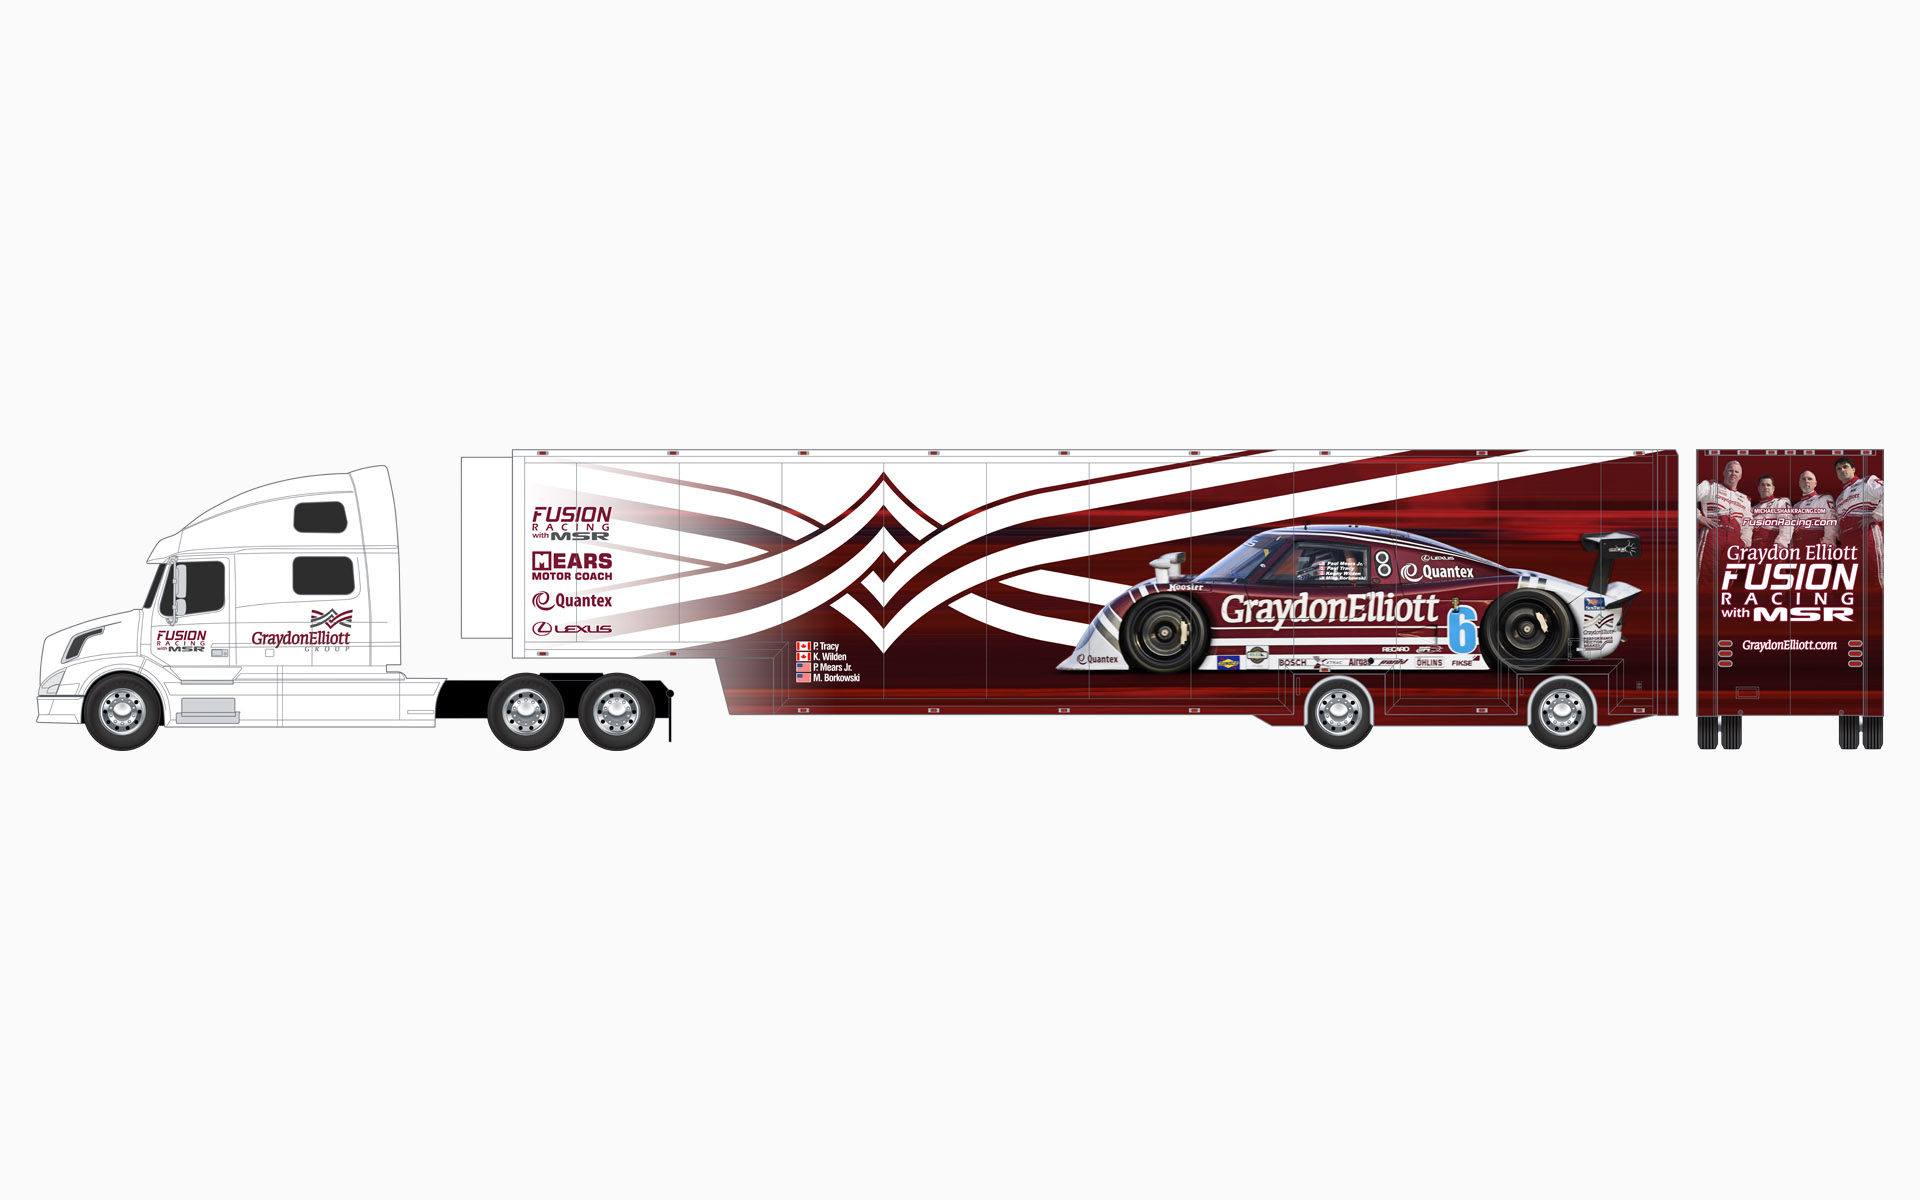 Michael Shank Racing Graydon Elliott Transporter Livery Elevations